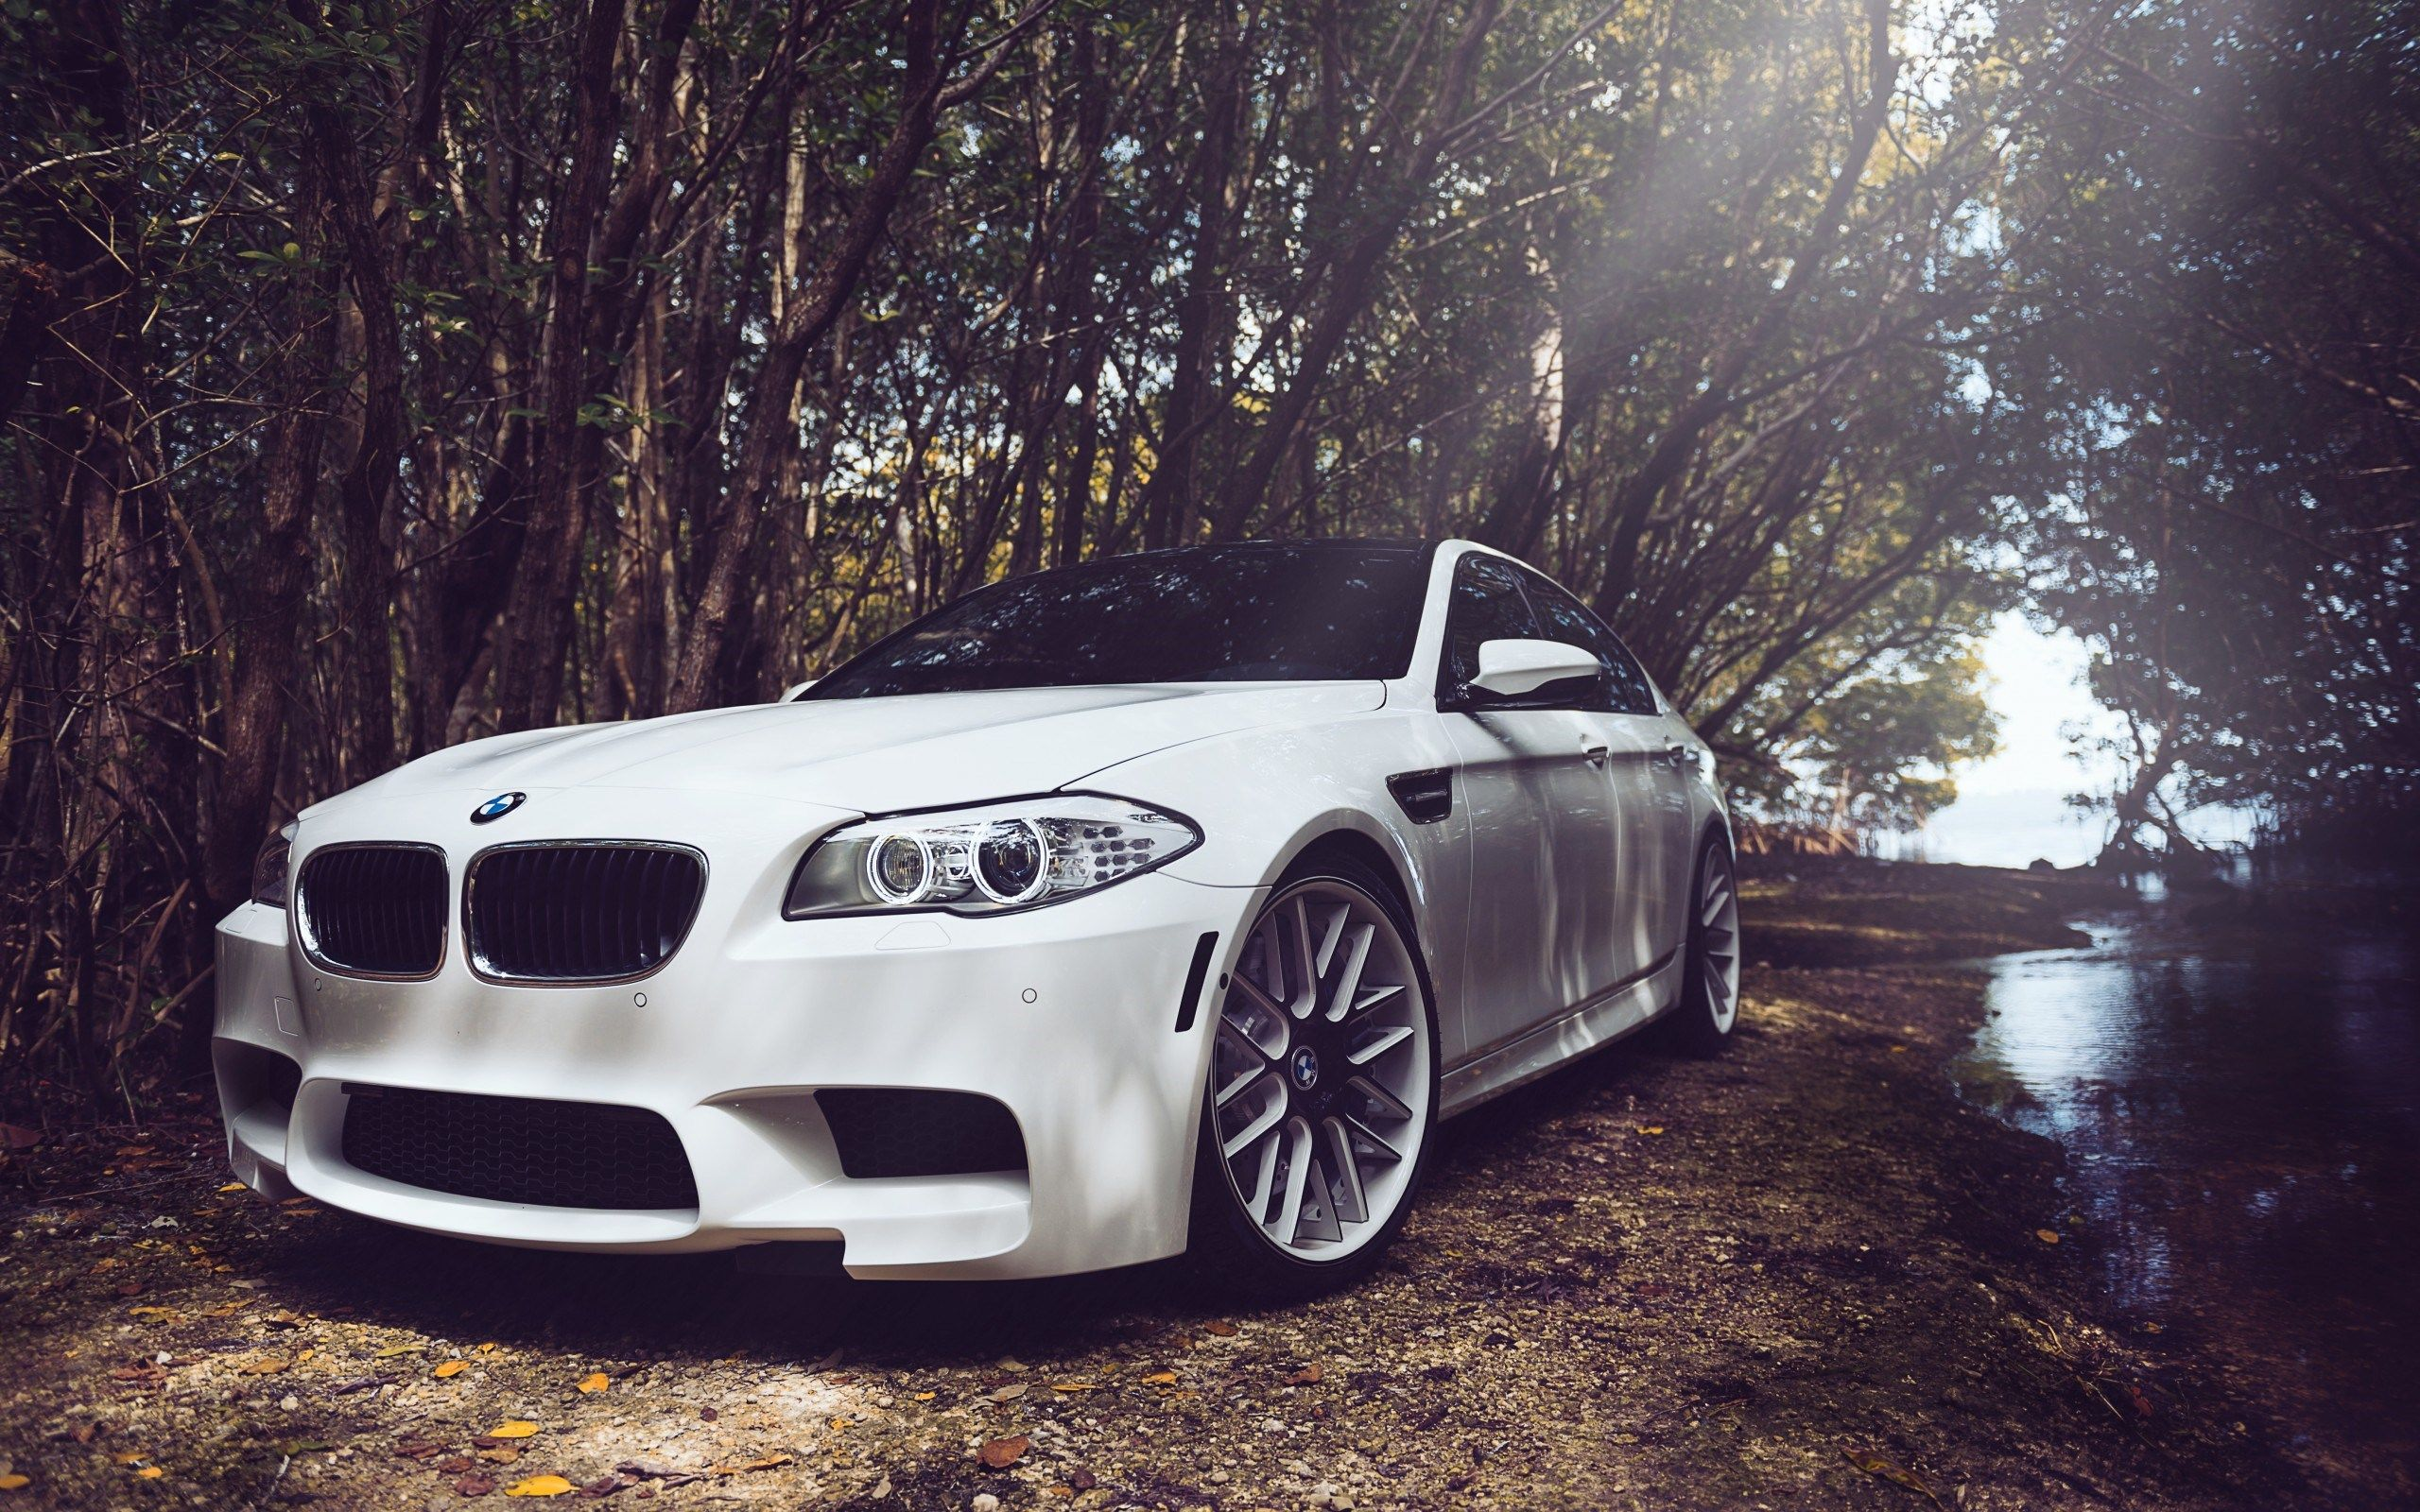 bmw cars hd wallpapers free wallpaper downloads bmw sports cars